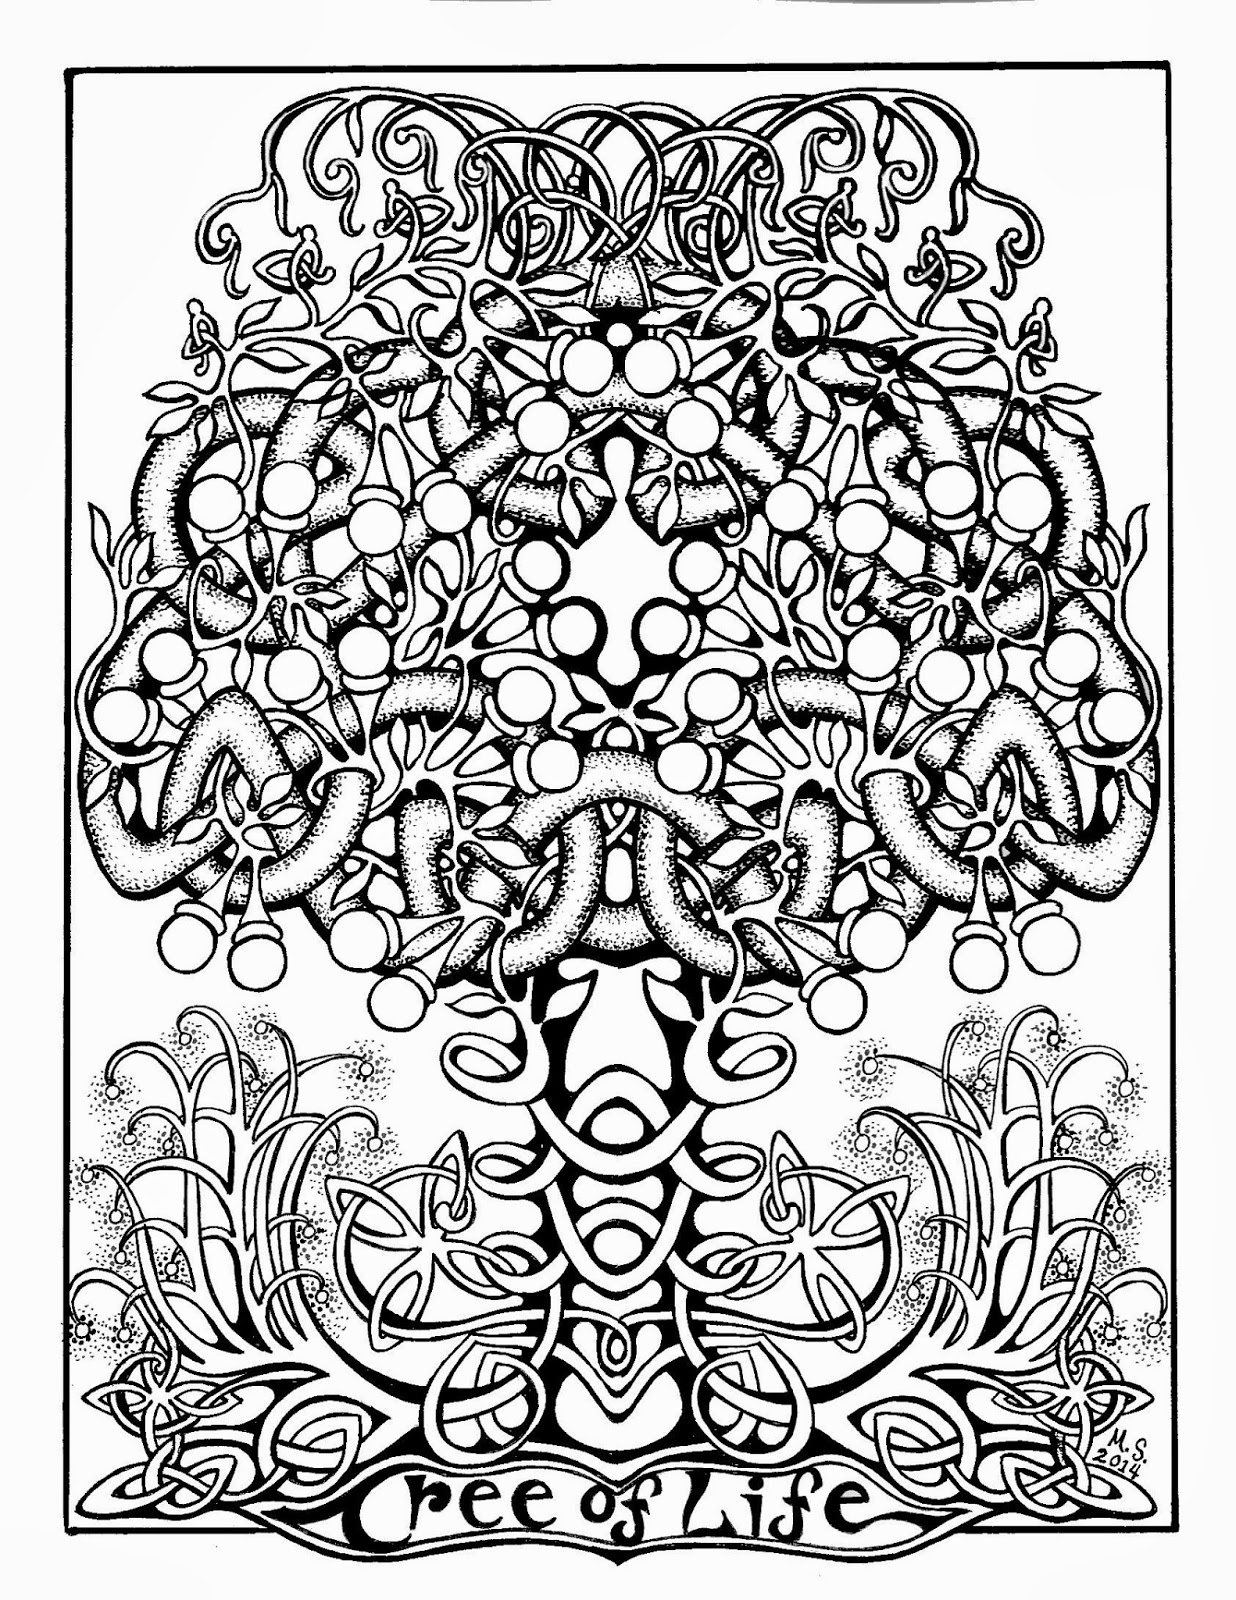 abstract trees coloring pages - photo#16